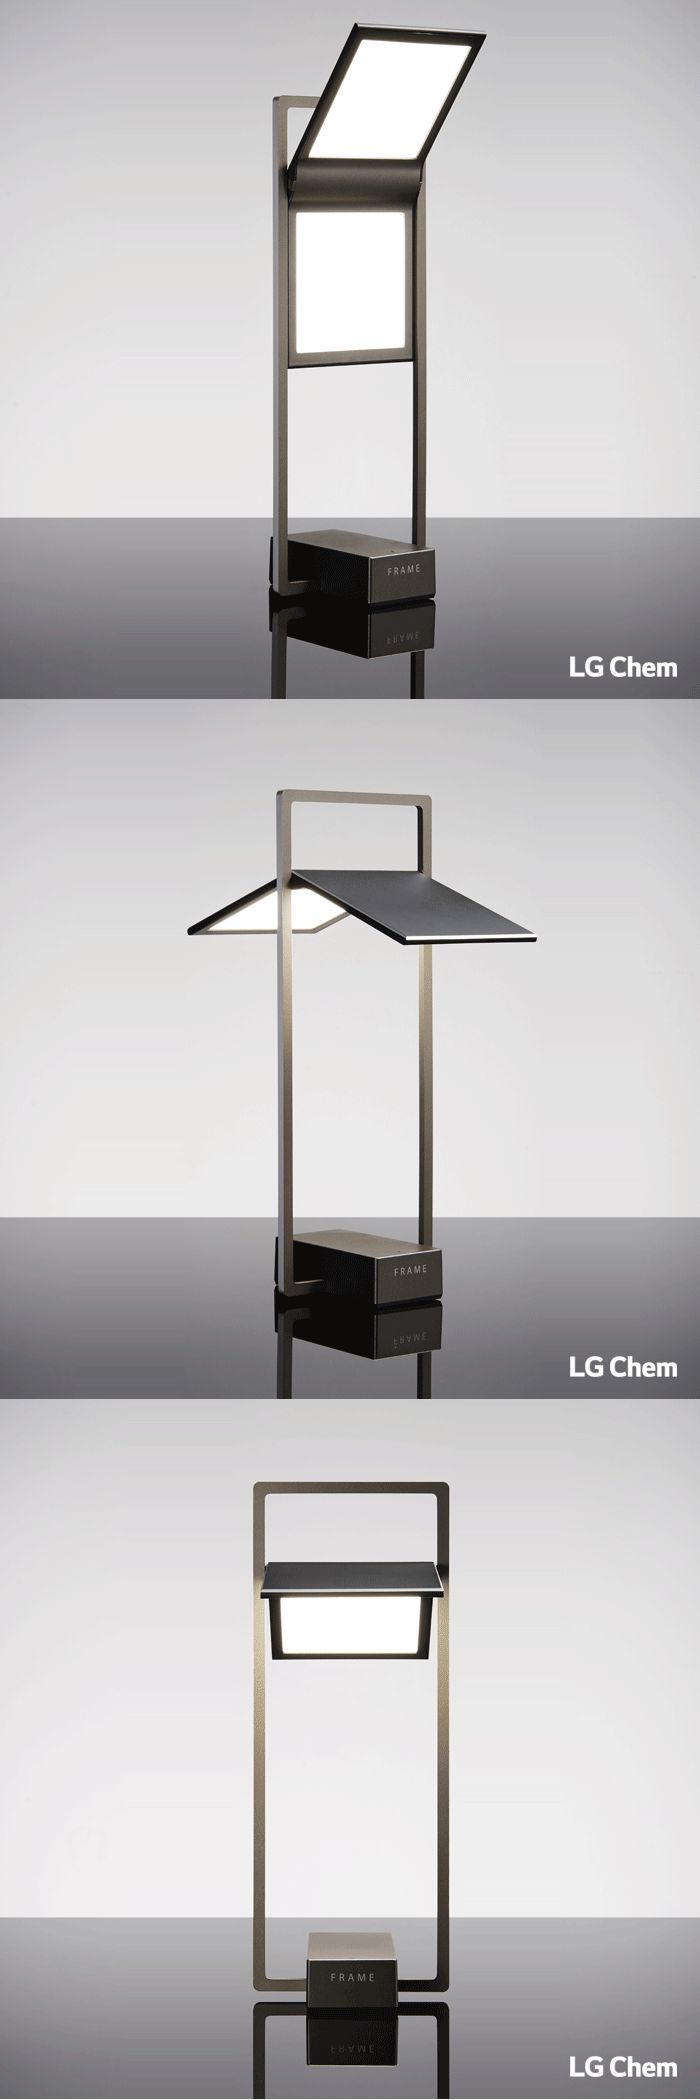 FRAME is made with 100x100mm LG Chem OLED Light panels. Unique designs such as FRAME are possible with OLEDs. FRAME will be commercially available soon. Please stay tuned. www.lgoledlight.com #LGChem #OLED #light #lamp #lighting #designs